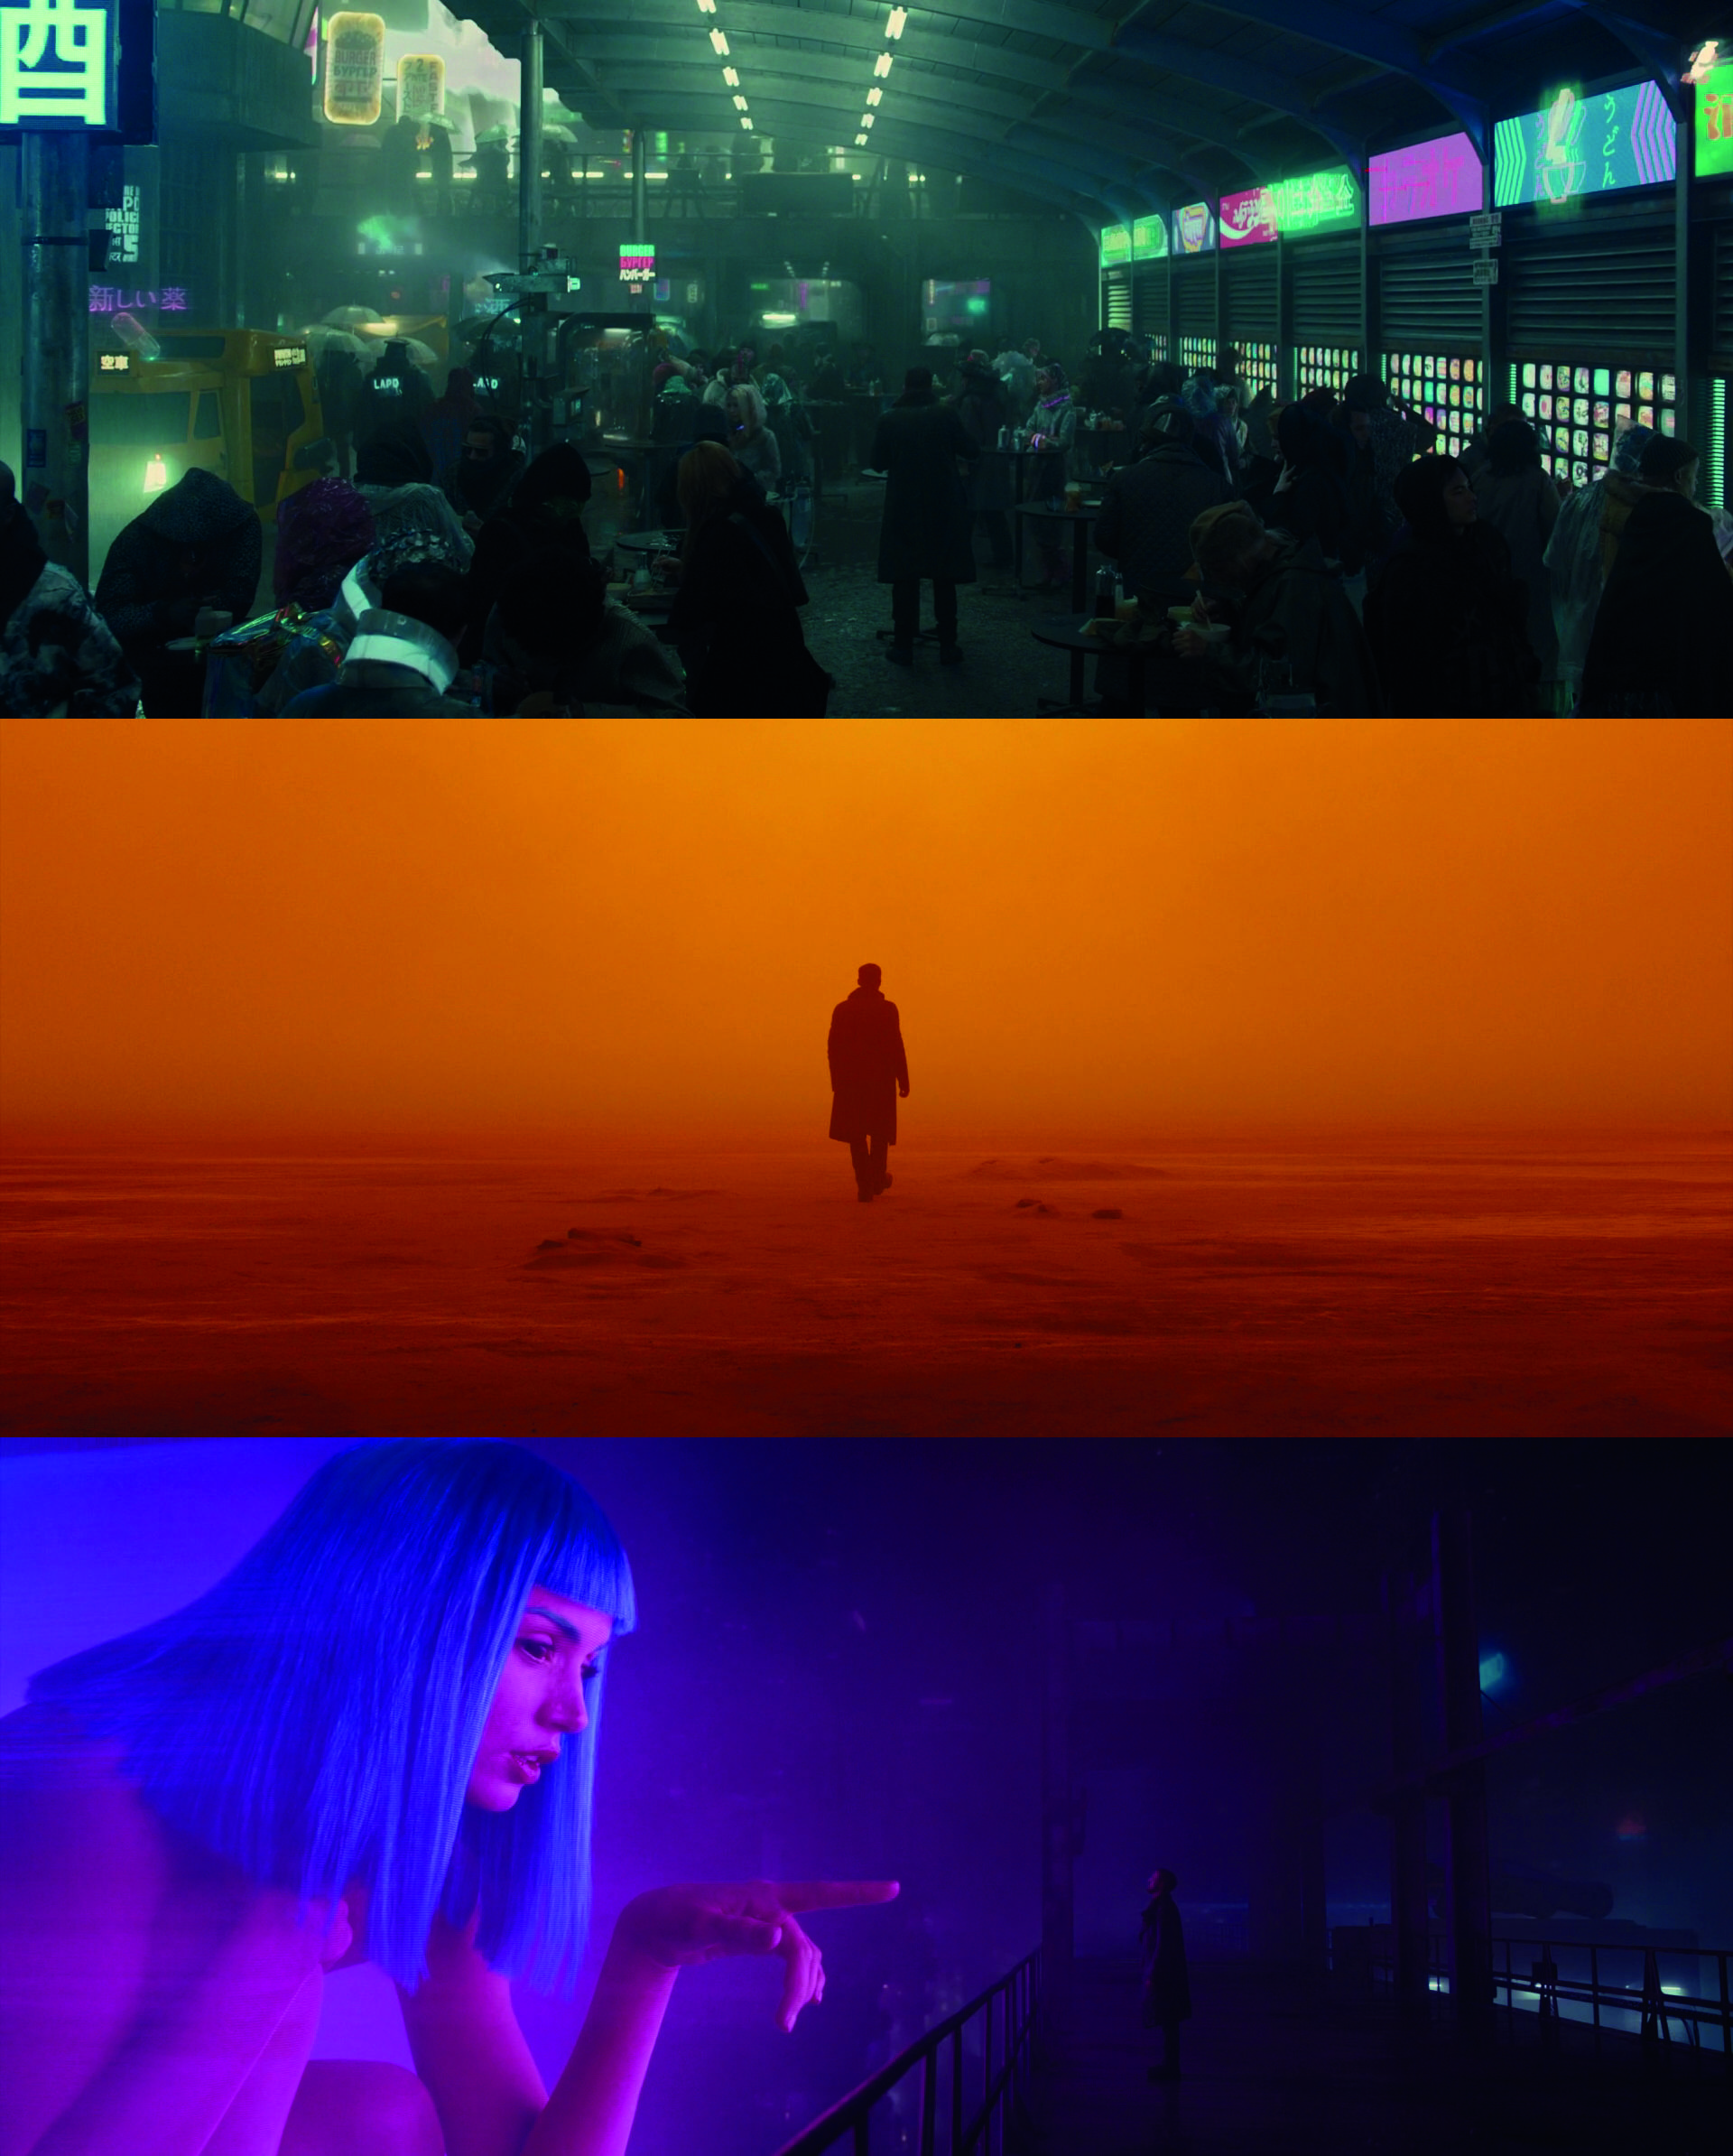 Blade Runner 2049 Cinematography | Blade runner, Film stills ...